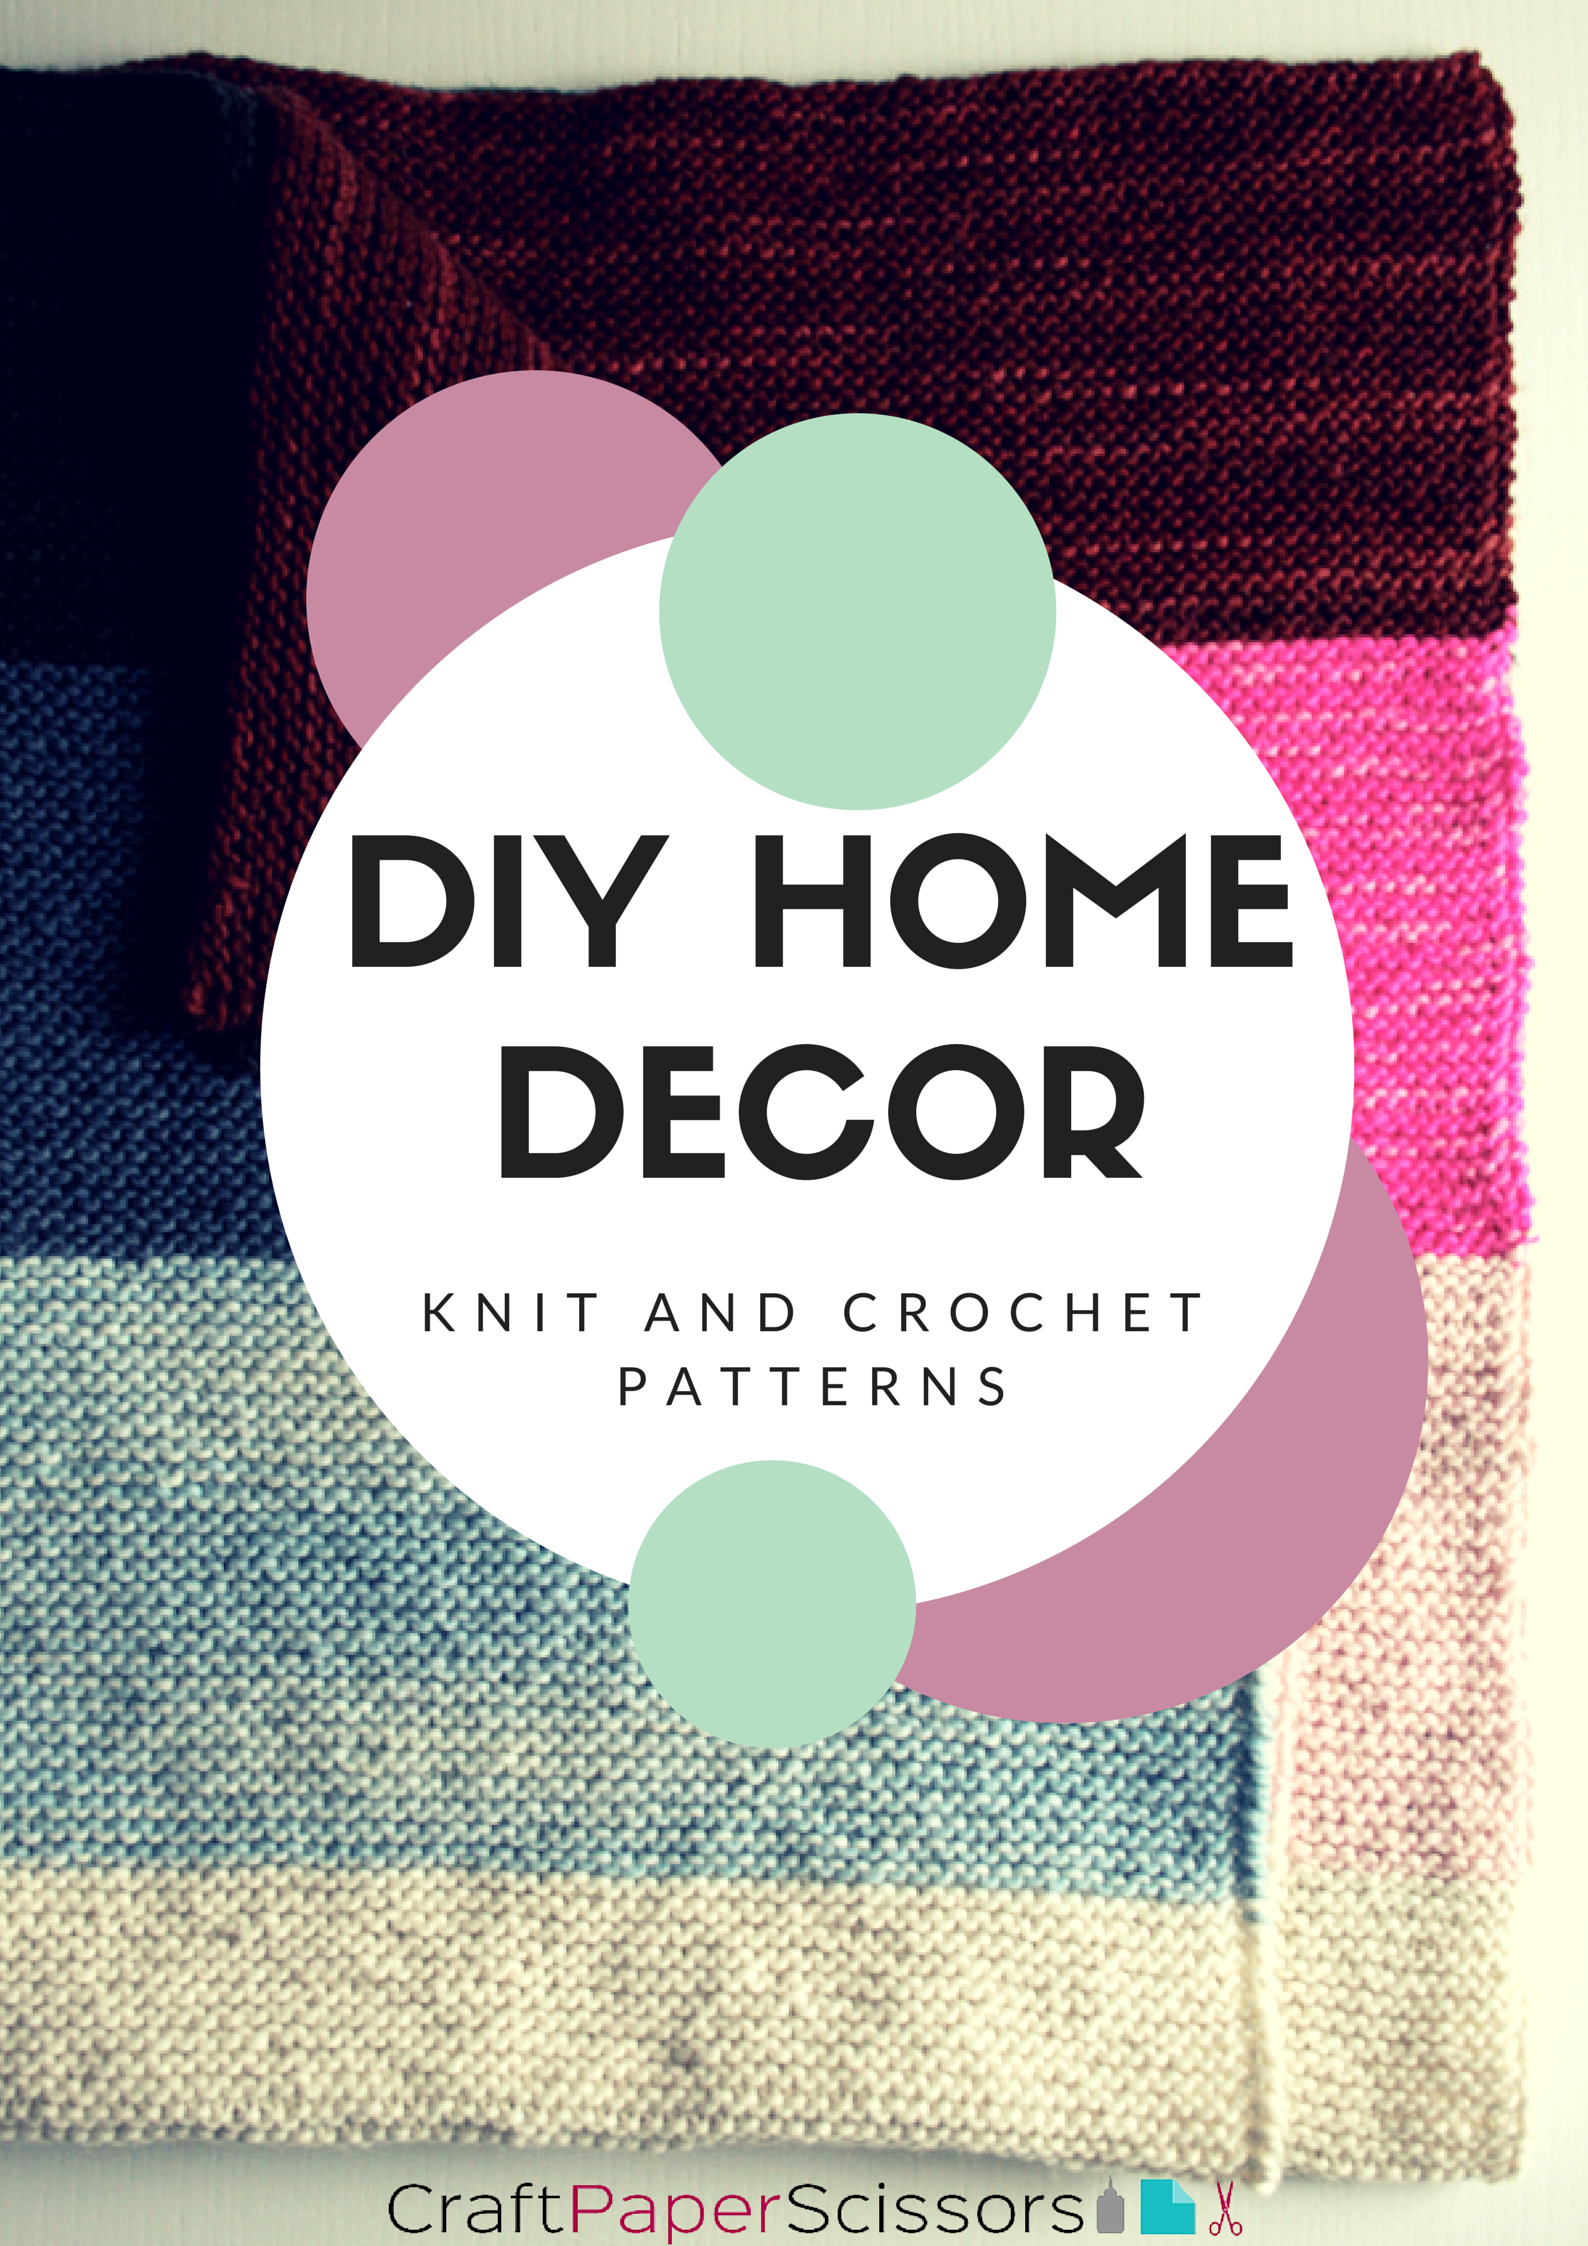 DIY Home Decor: Knit and Crochet Patterns